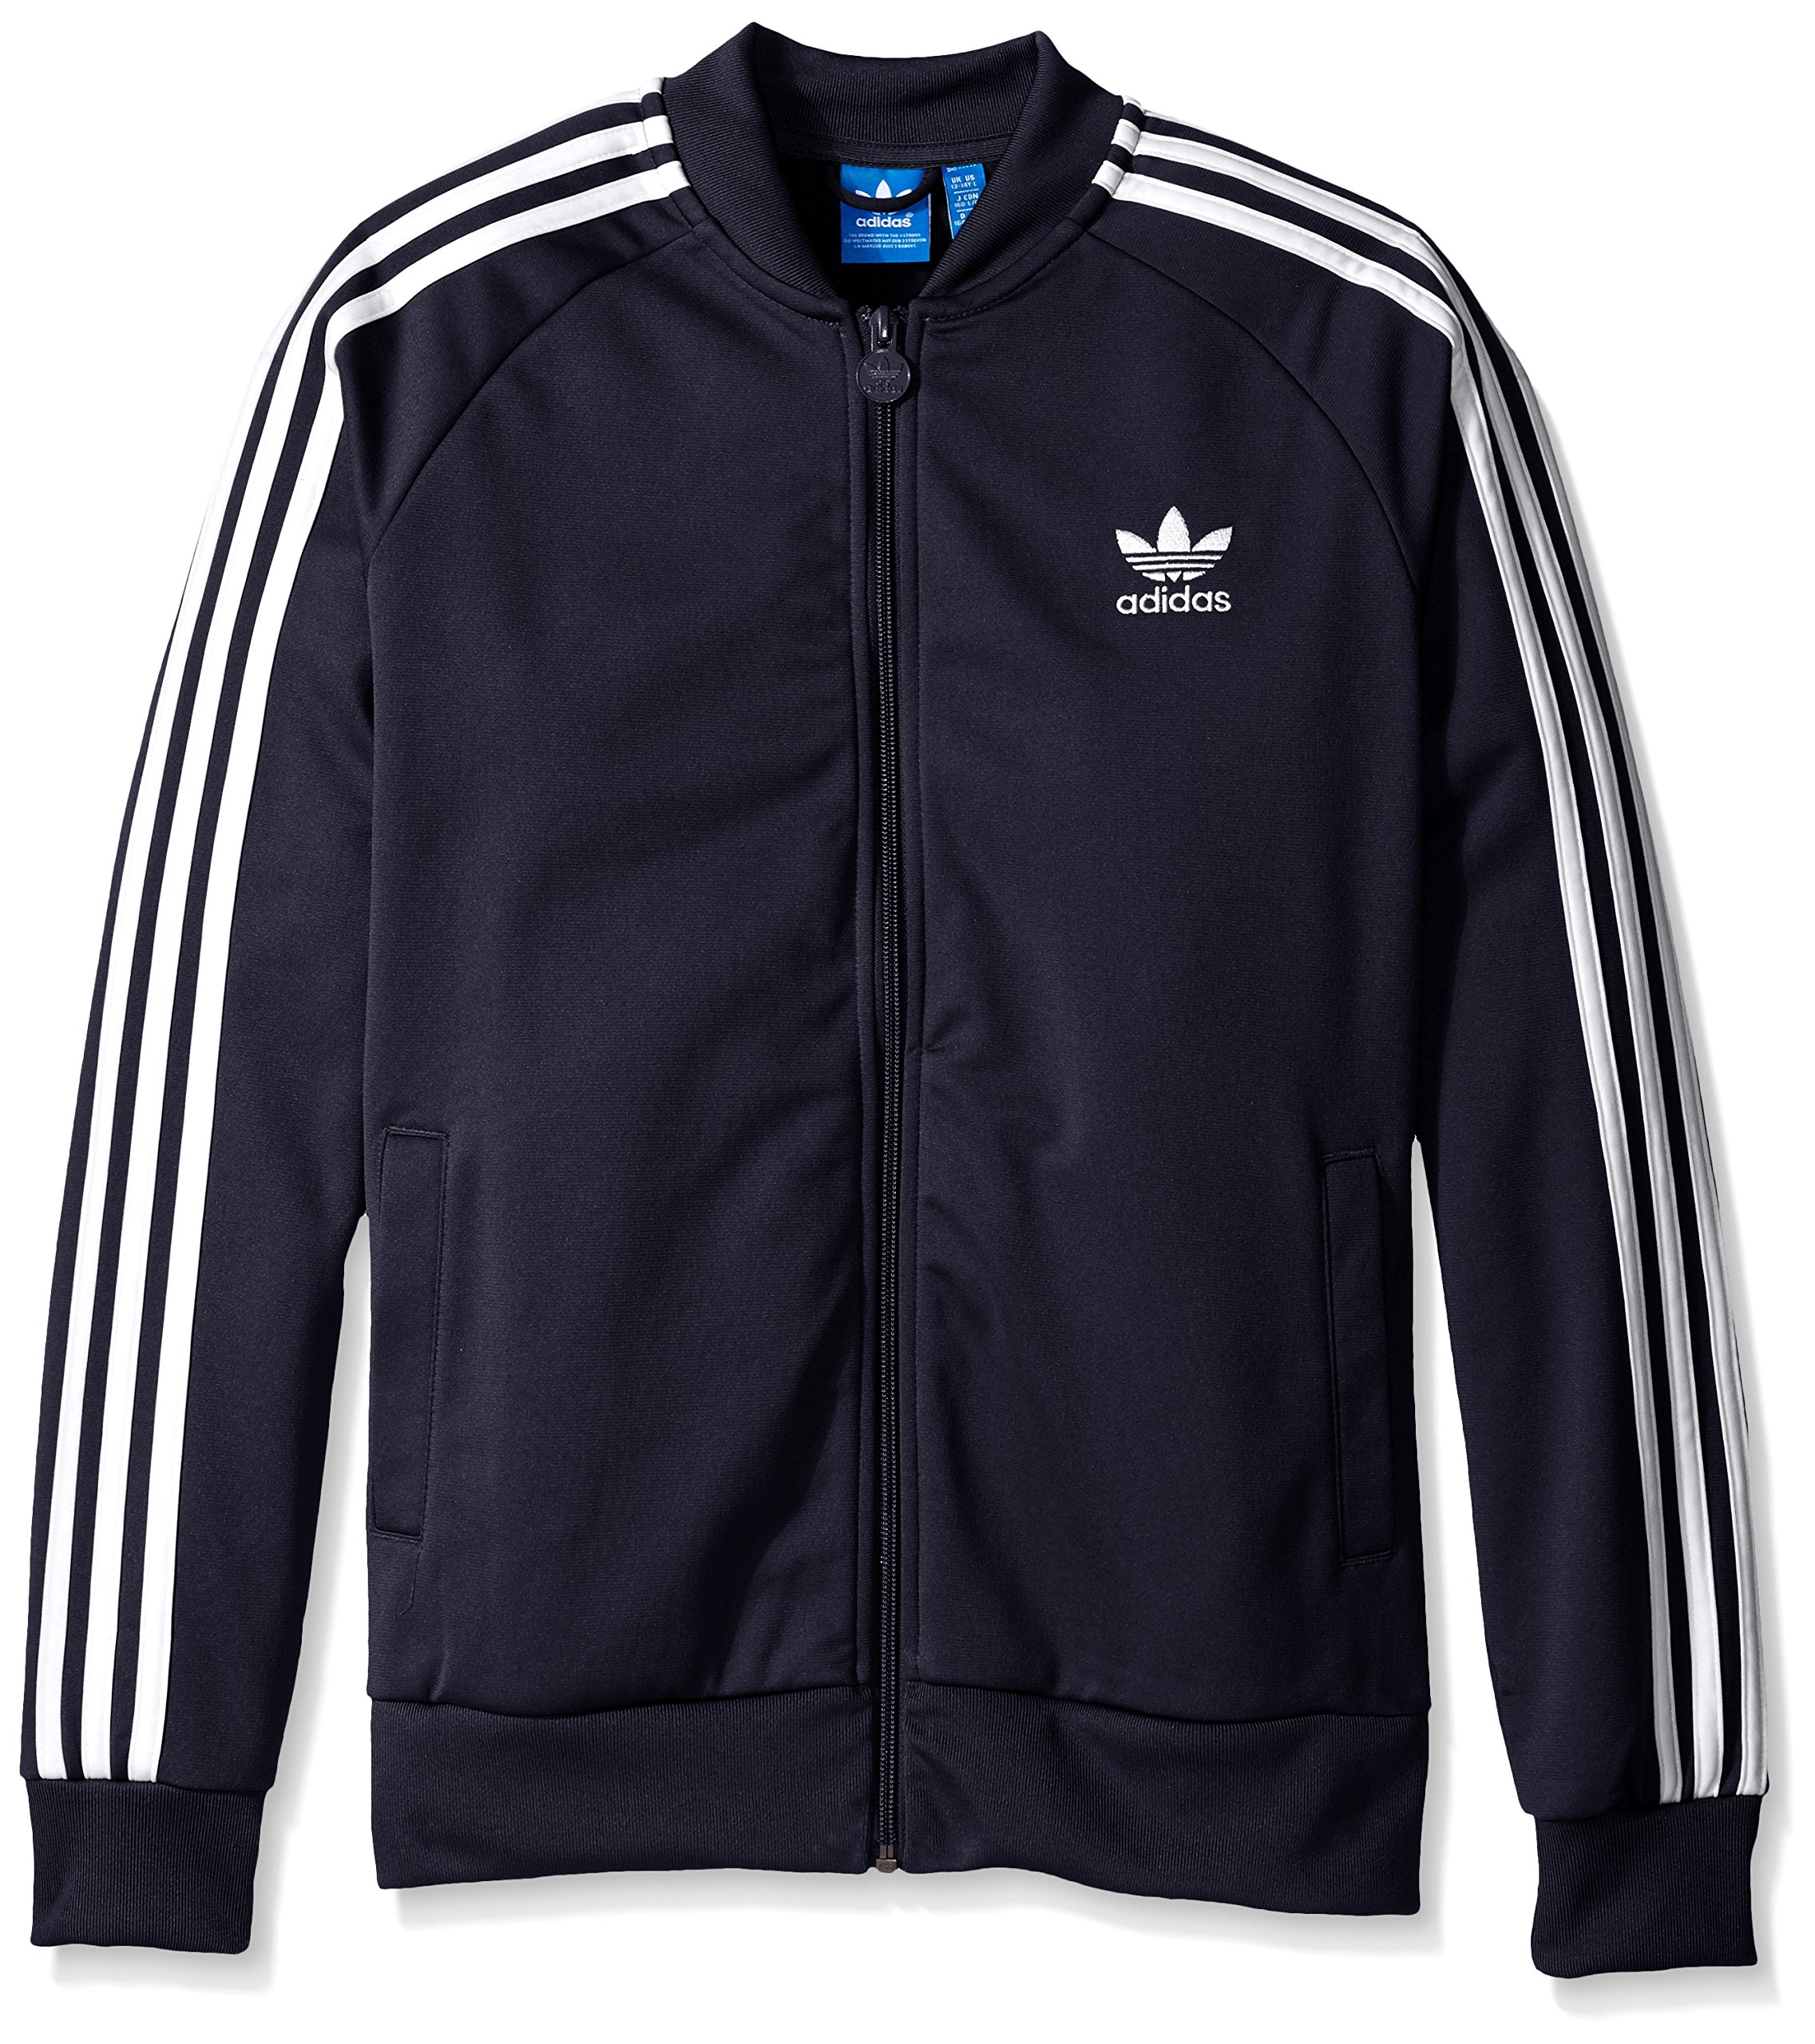 adidas Originals Boys' Superstar Track Top, Legend Ink/White, X-Small by adidas Originals